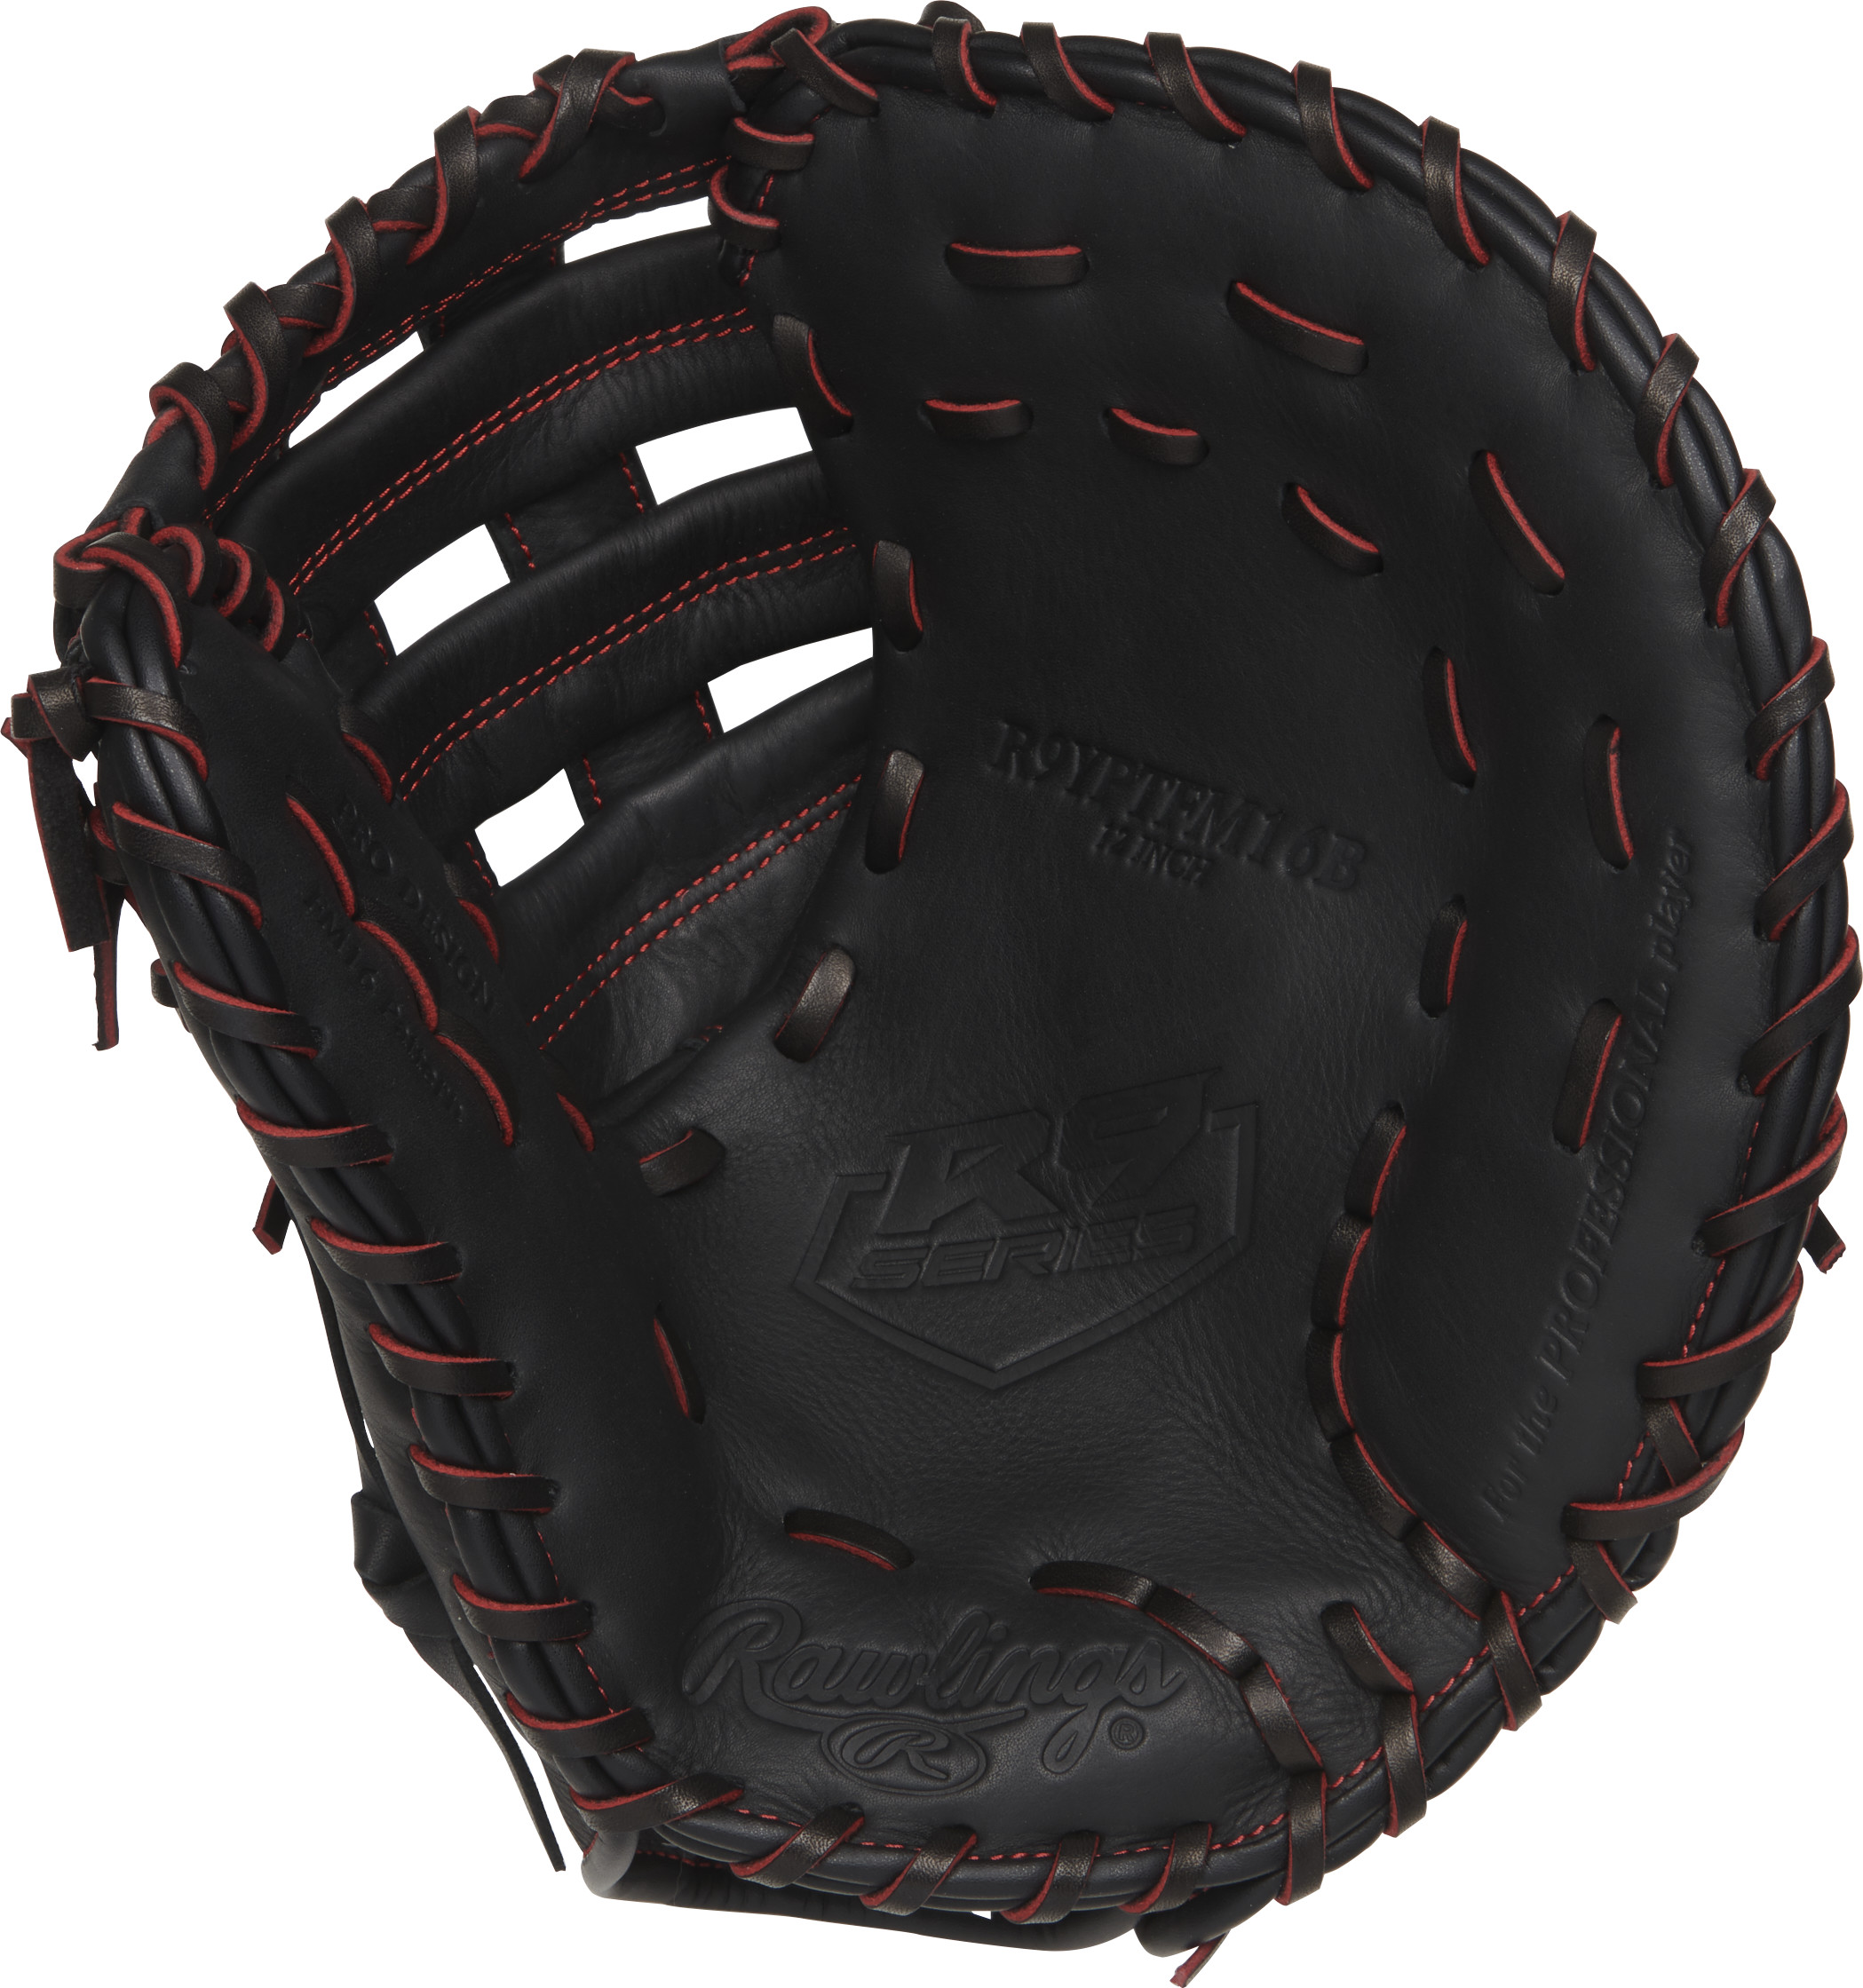 http://www.bestbatdeals.com/images/gloves/rawlings/R9YPTFM16B-1.jpg